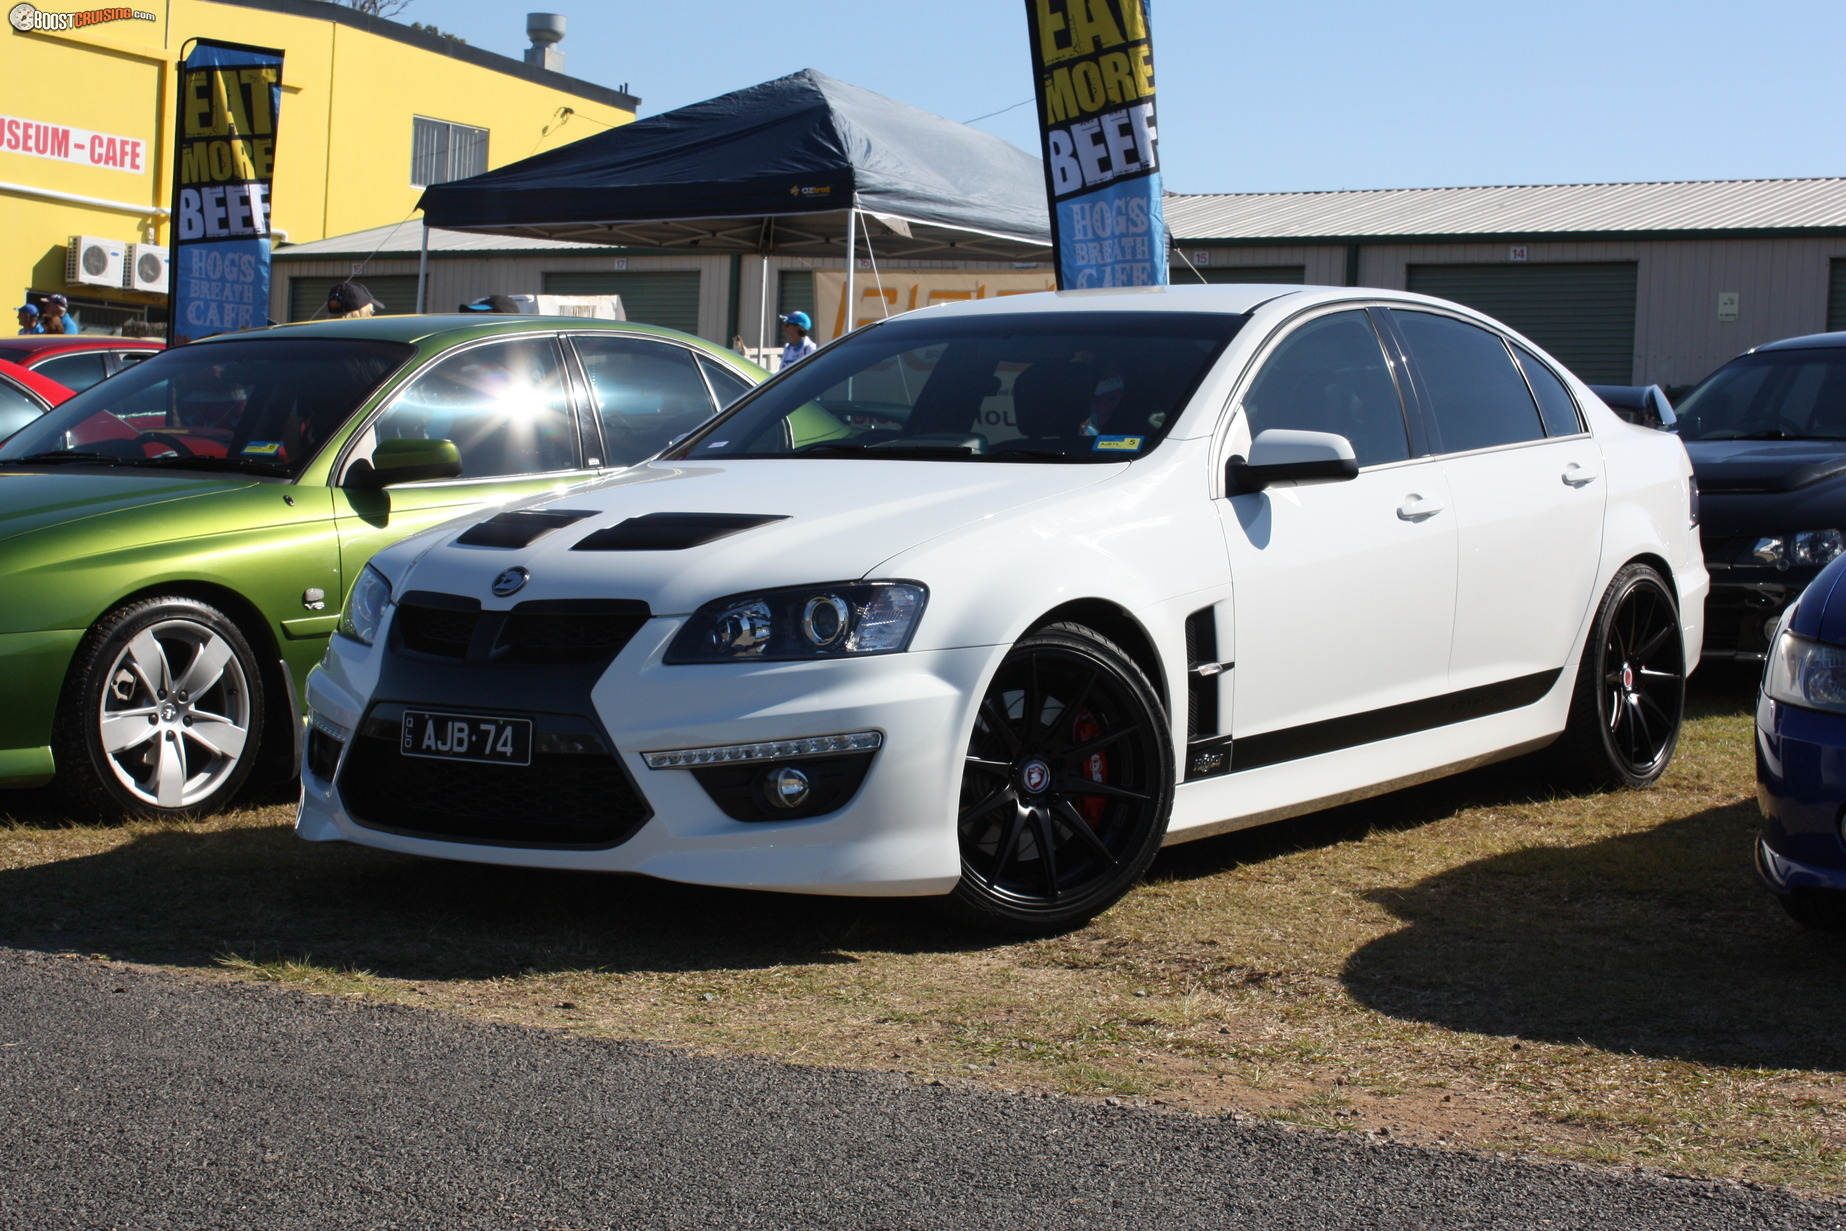 Hsv clubsport photo - 5